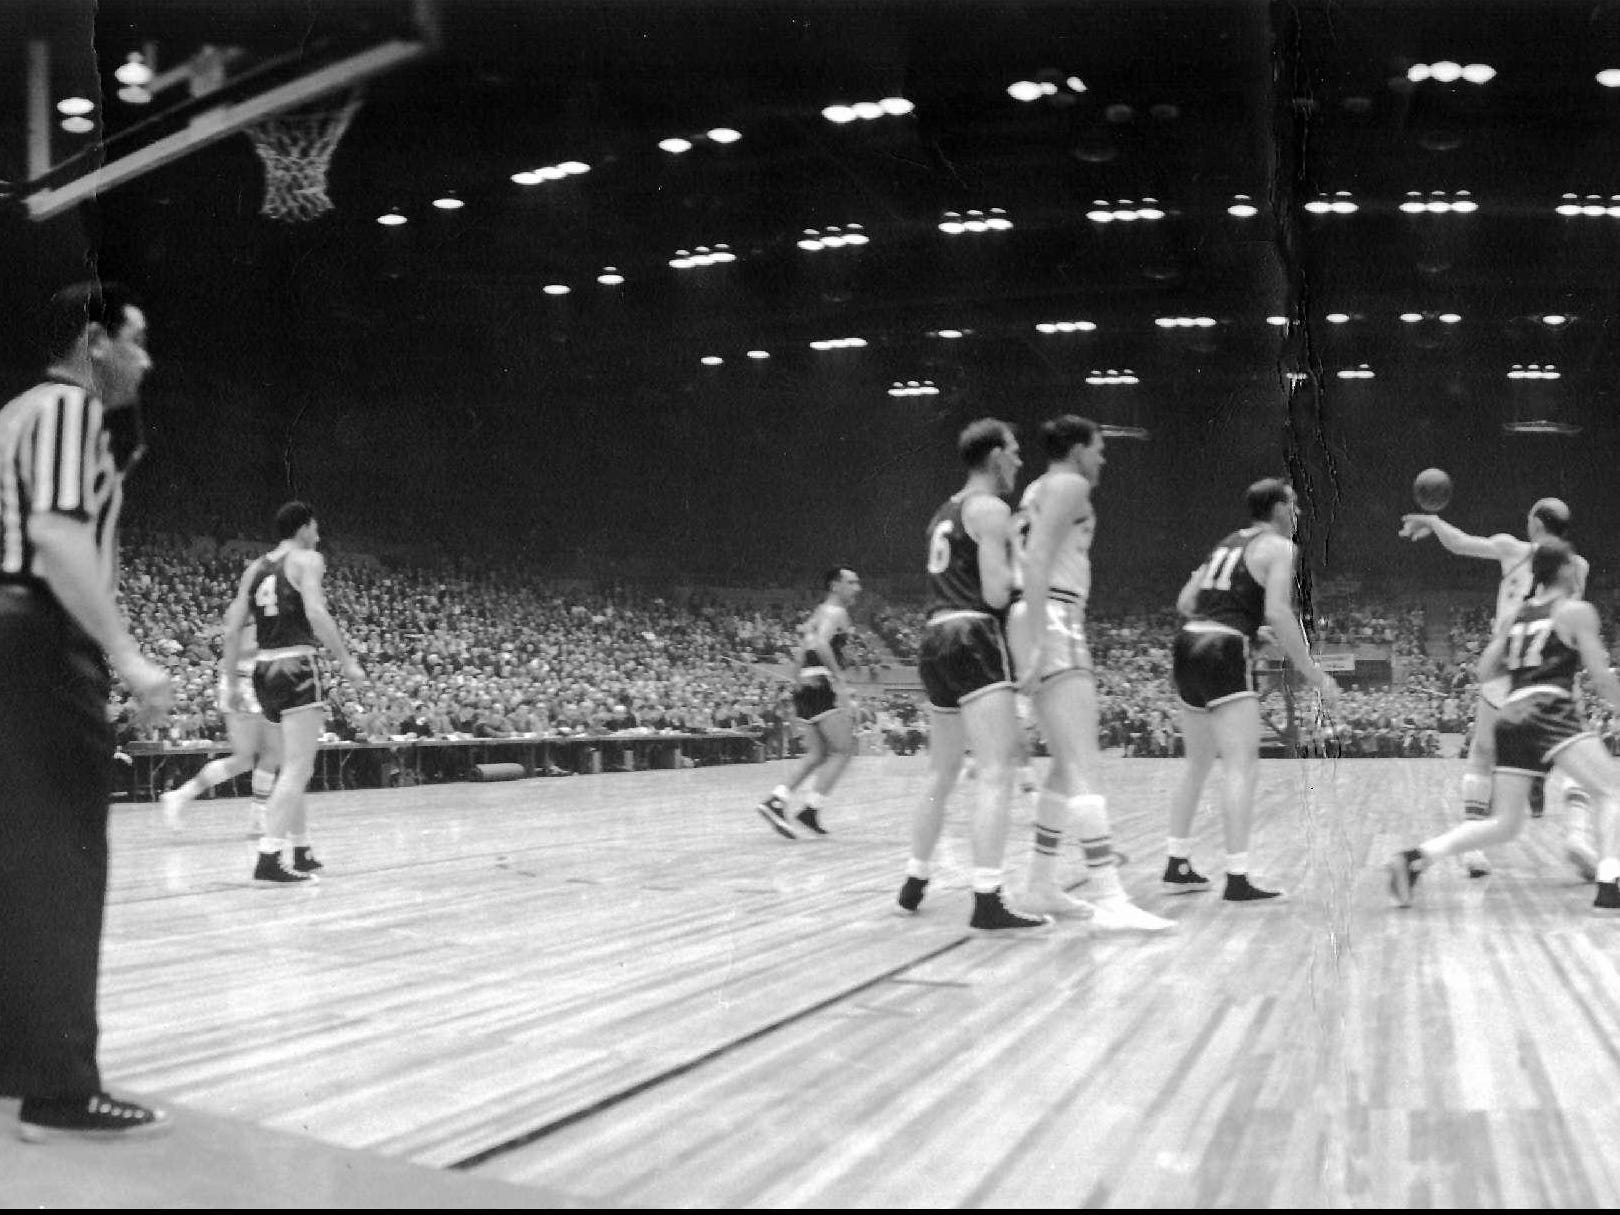 A scene from the 1956 NBA All-Star game at the Rochester War Memorial.  #4 is Dolph Schayes, heading down the court in the center of the photo is Bob Cousey.